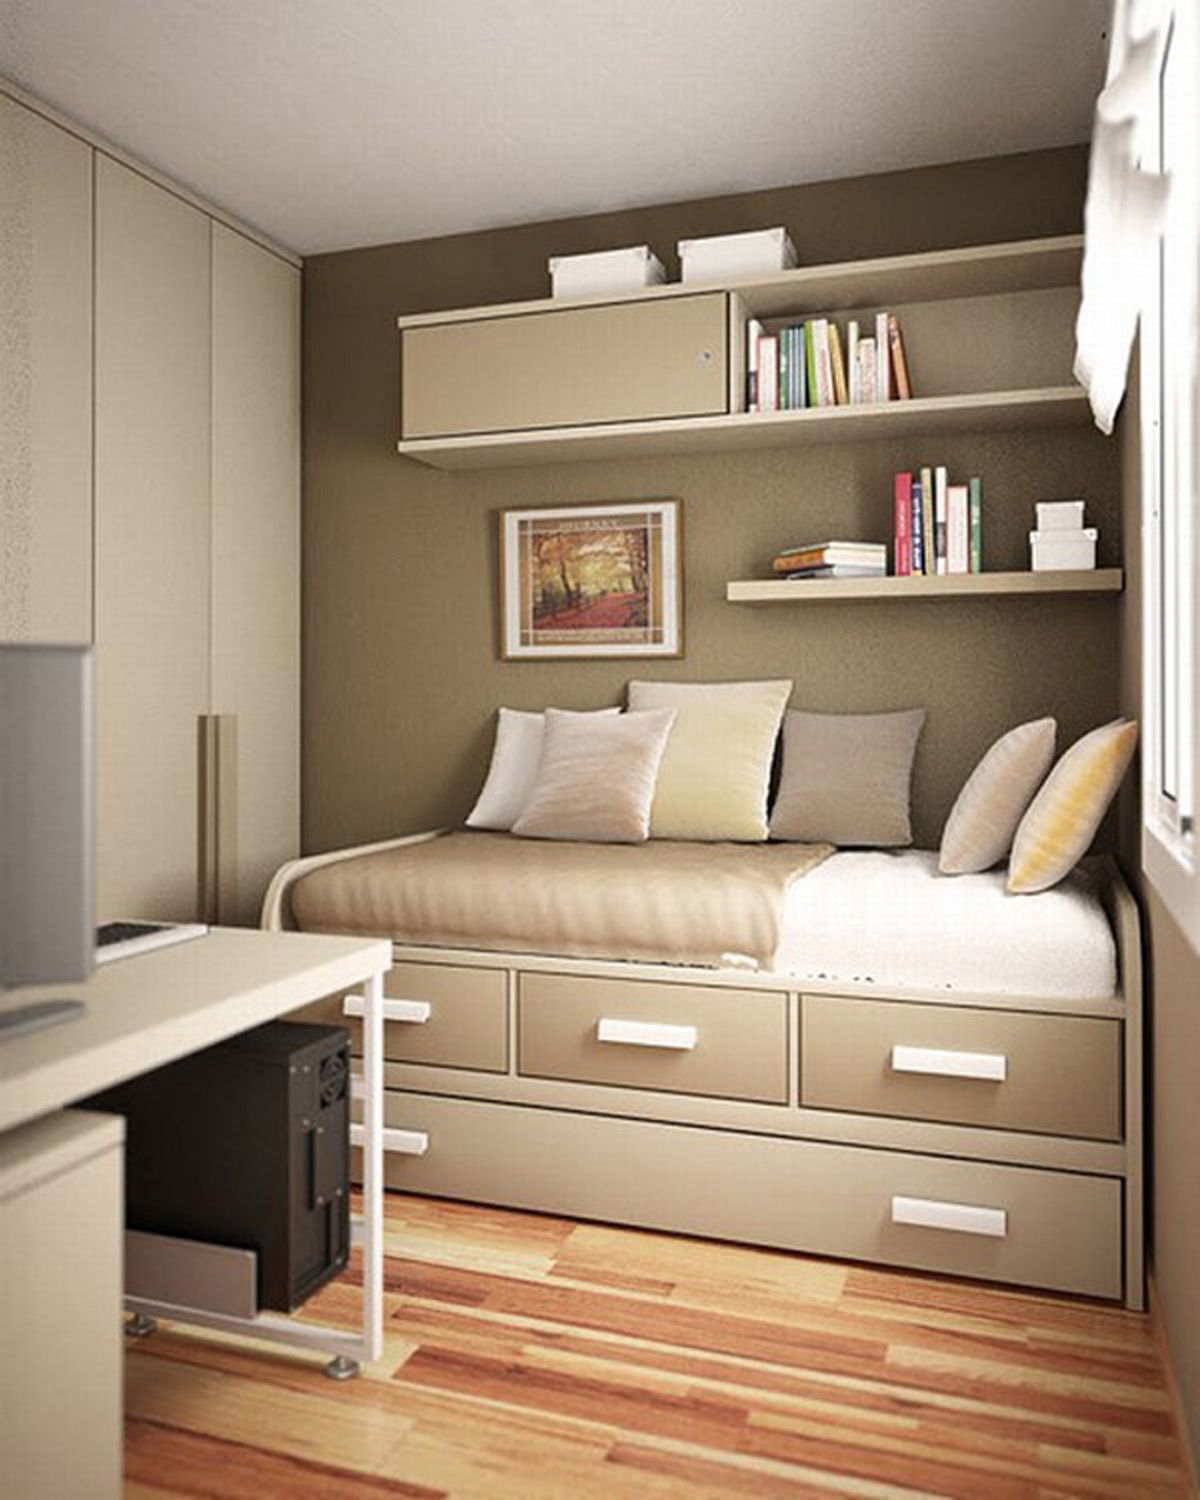 Small Bedroom Interior Design Amusing Contemporary Small Bedroom Ideas  Decozilla  Ideas For The House Decorating Design